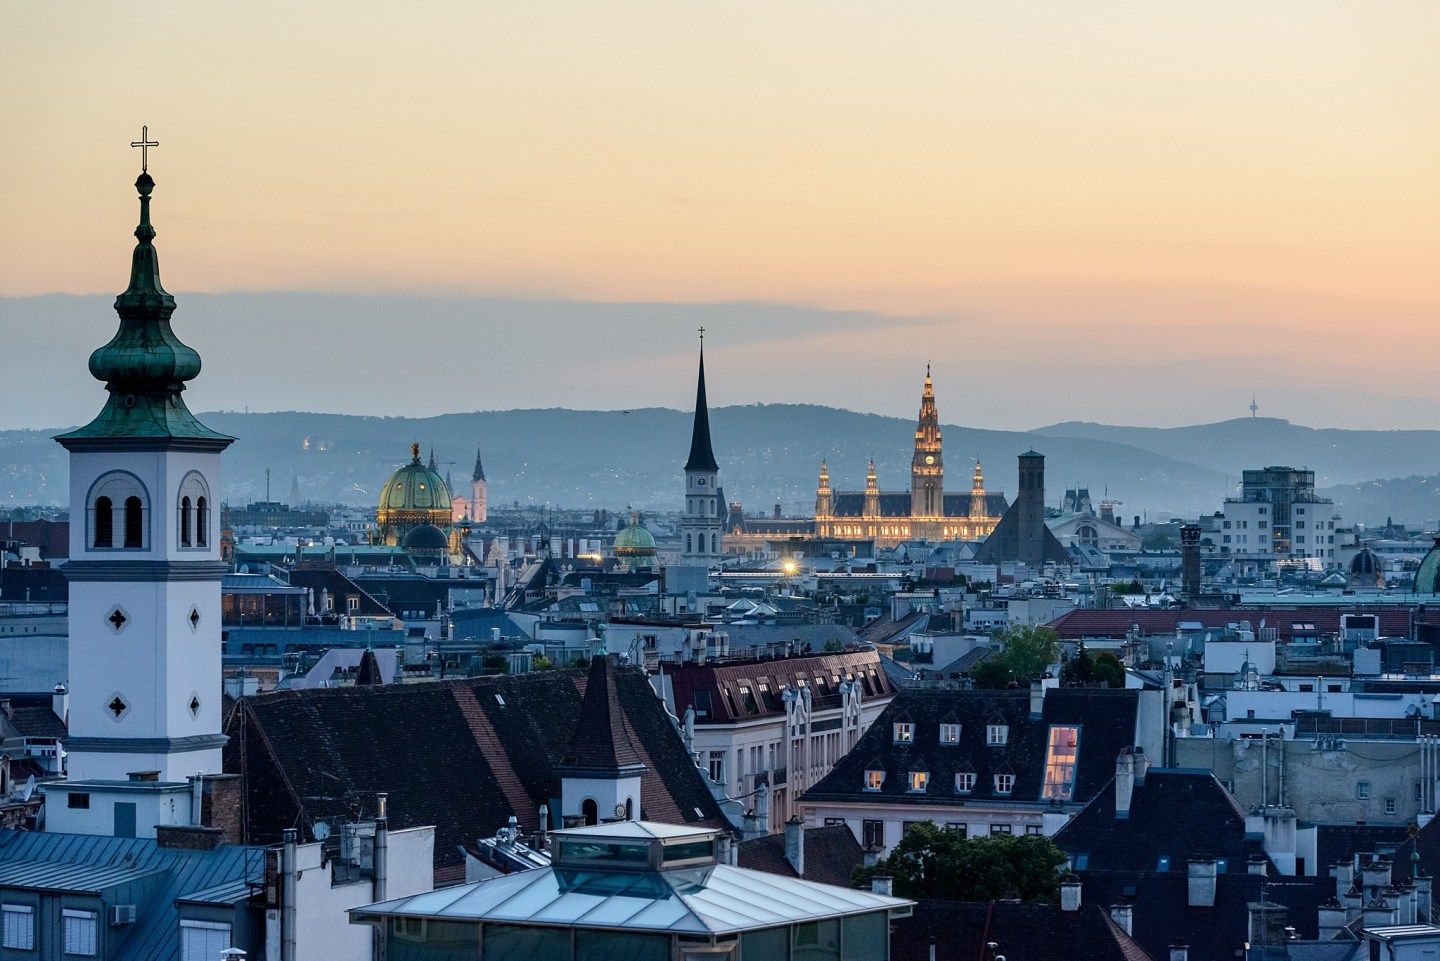 Vienna City Guide: Sights, Food & Christmas Markets